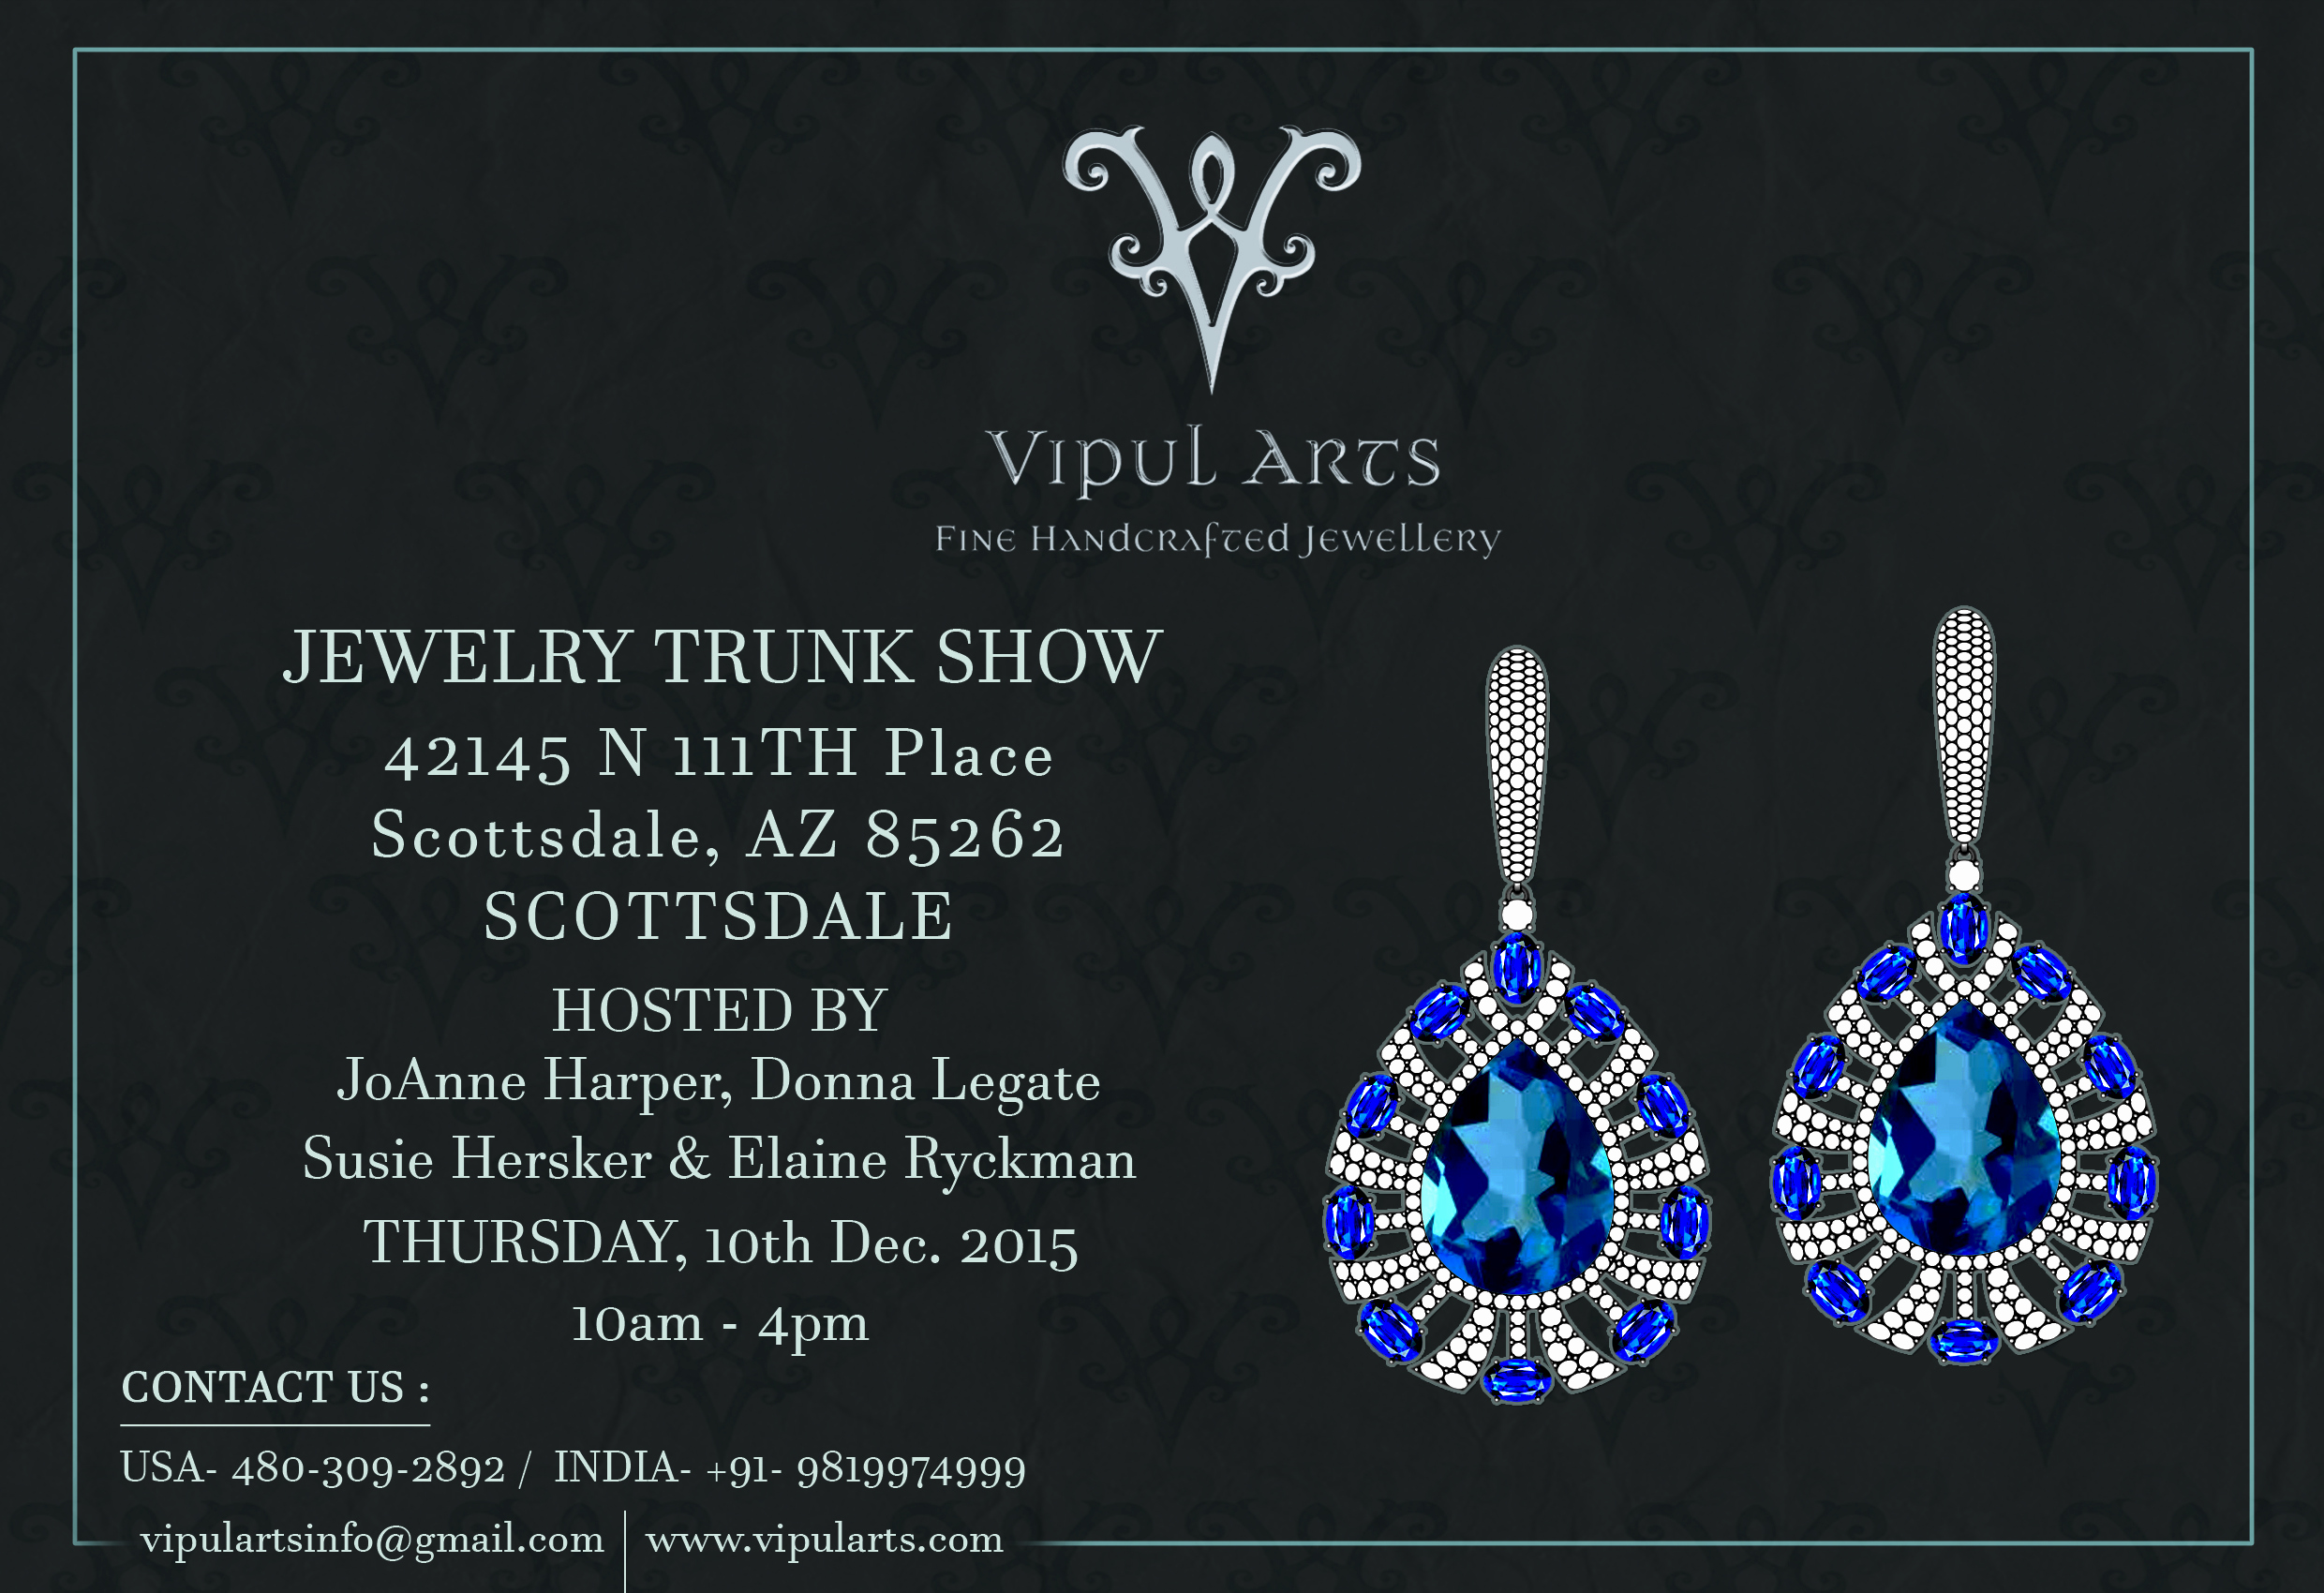 Jewelry Trunk Show Invitation Unique Please Join Us for Our Holiday Open House & Jewelry Trunk